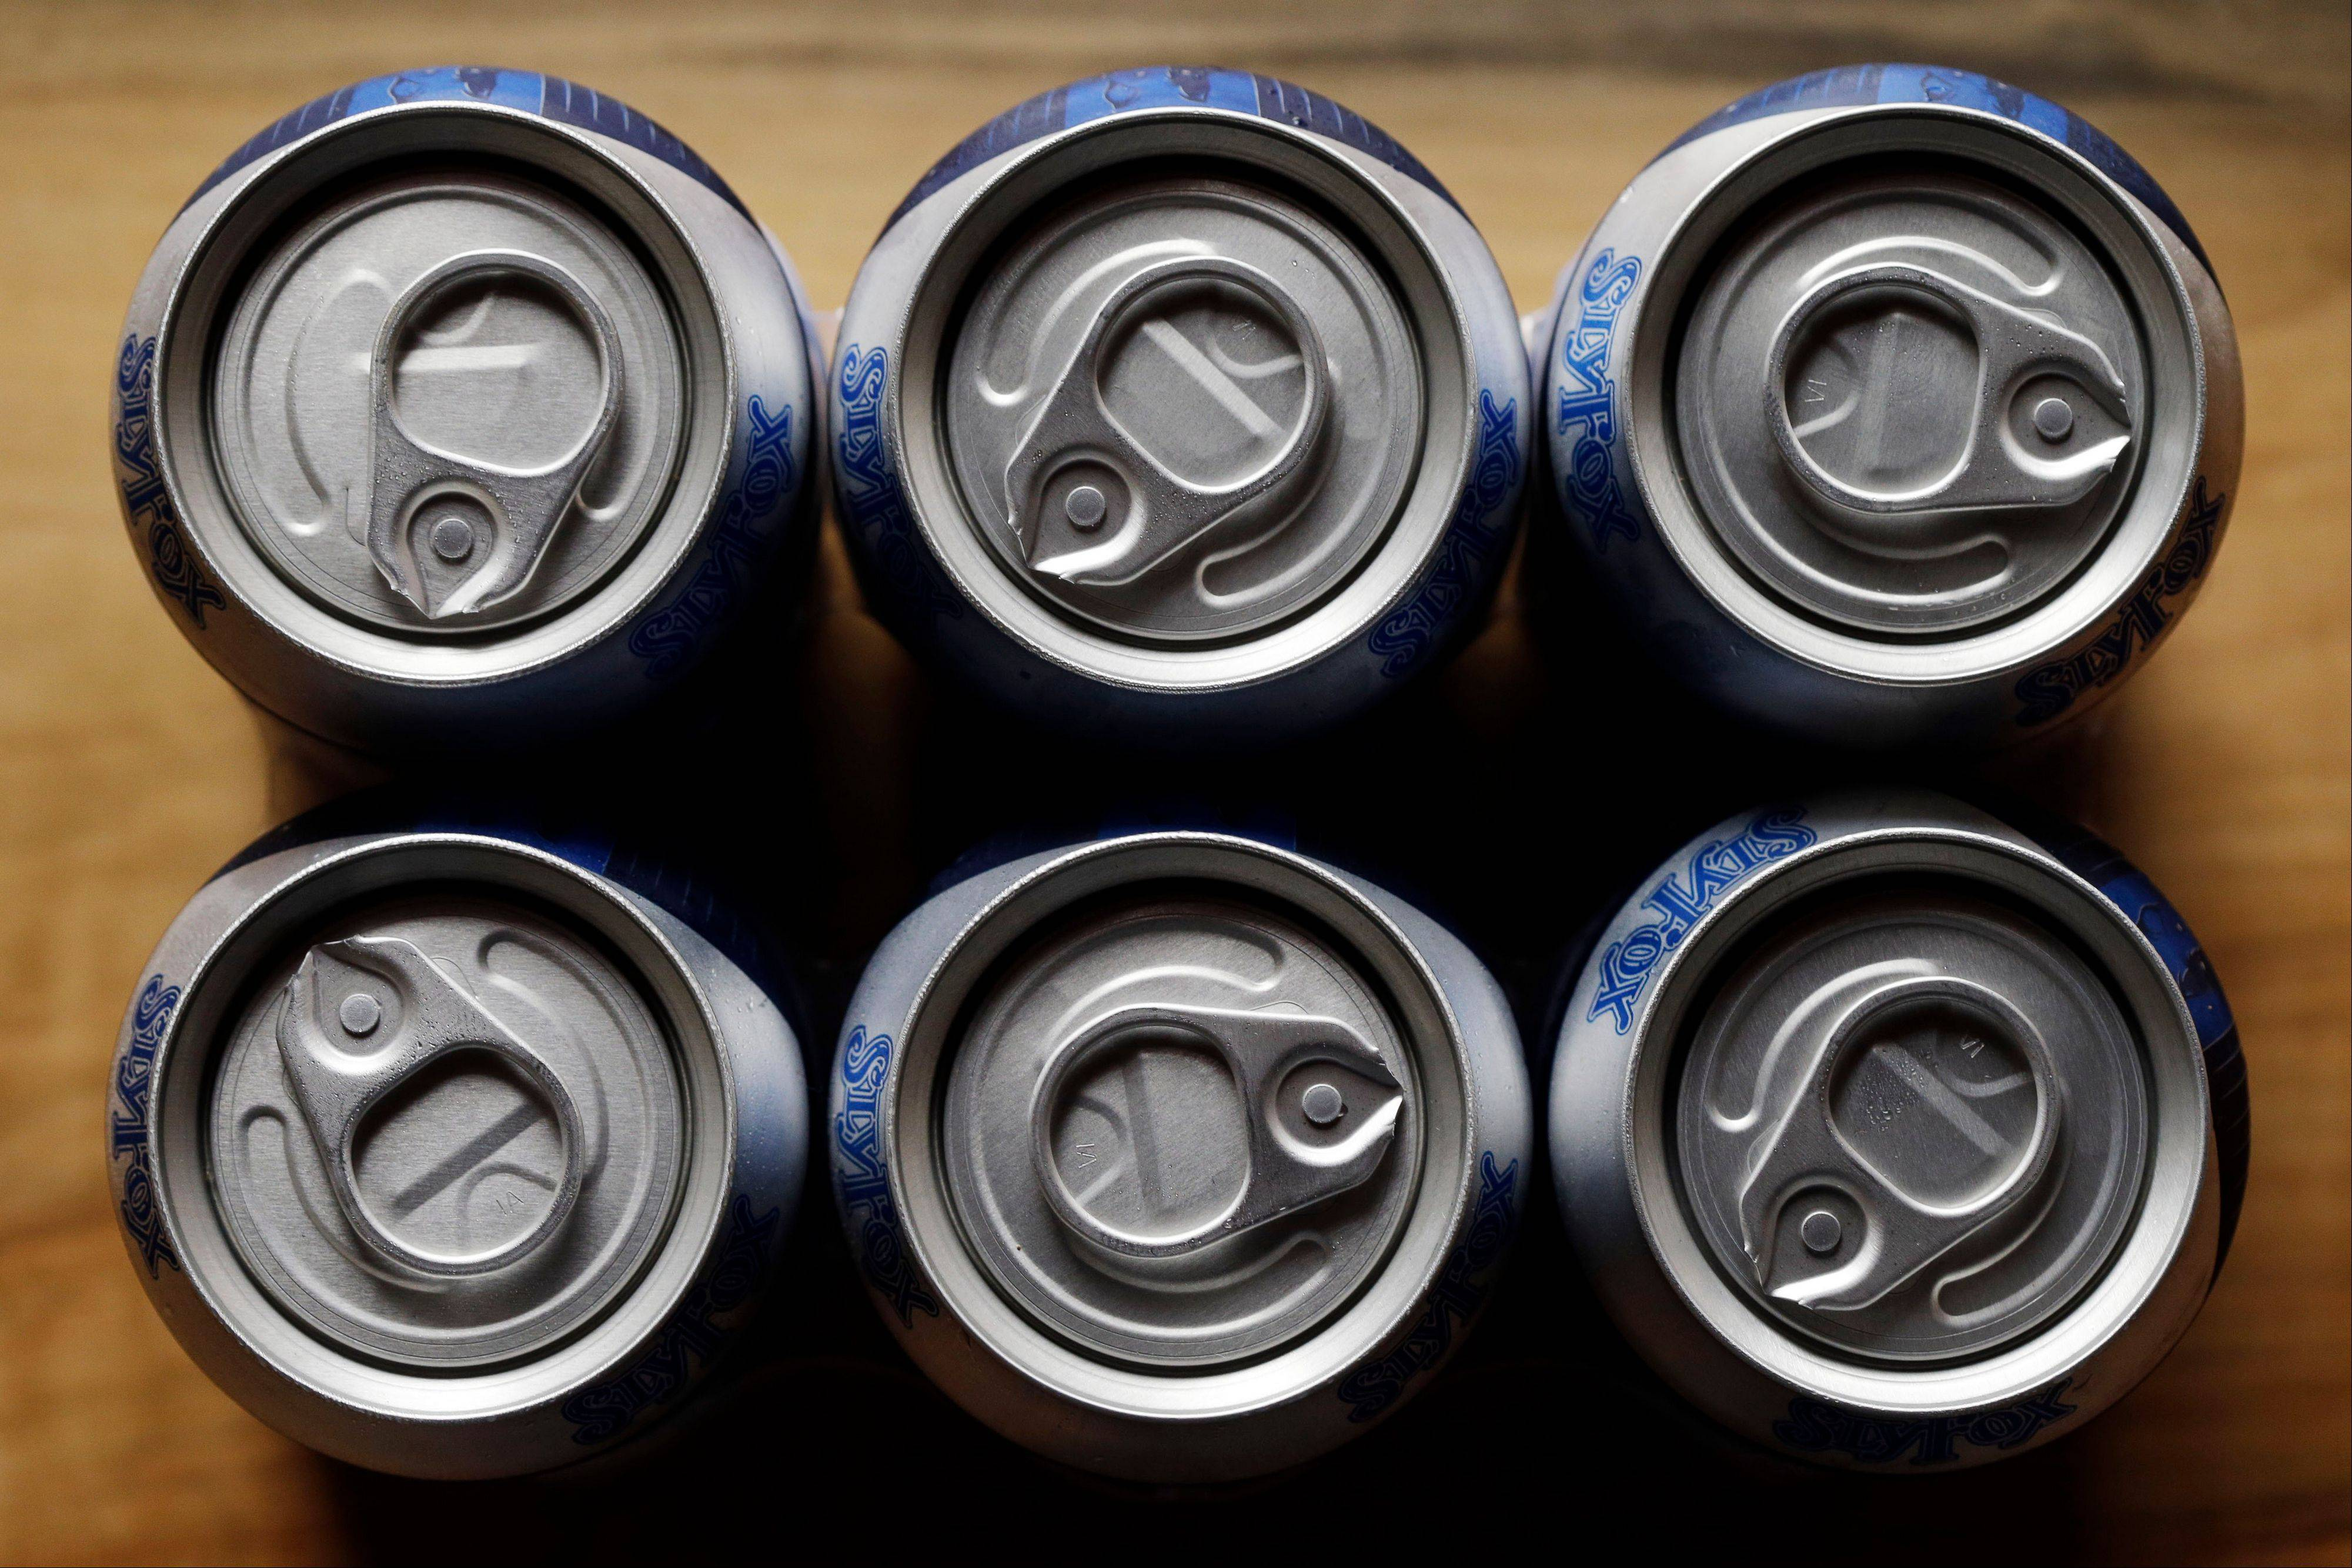 In this Monday, June 3, 2013 photo, cans of Helles Golden Lager with a 360 Lid are displayed at the Sly Fox Brewing Company, in Pottstown, Pa. Brewers and consumers debate using bottles or cans, innovation of the age-old staple continues as breweries seek to differentiate themselves on expanding beer shelves.